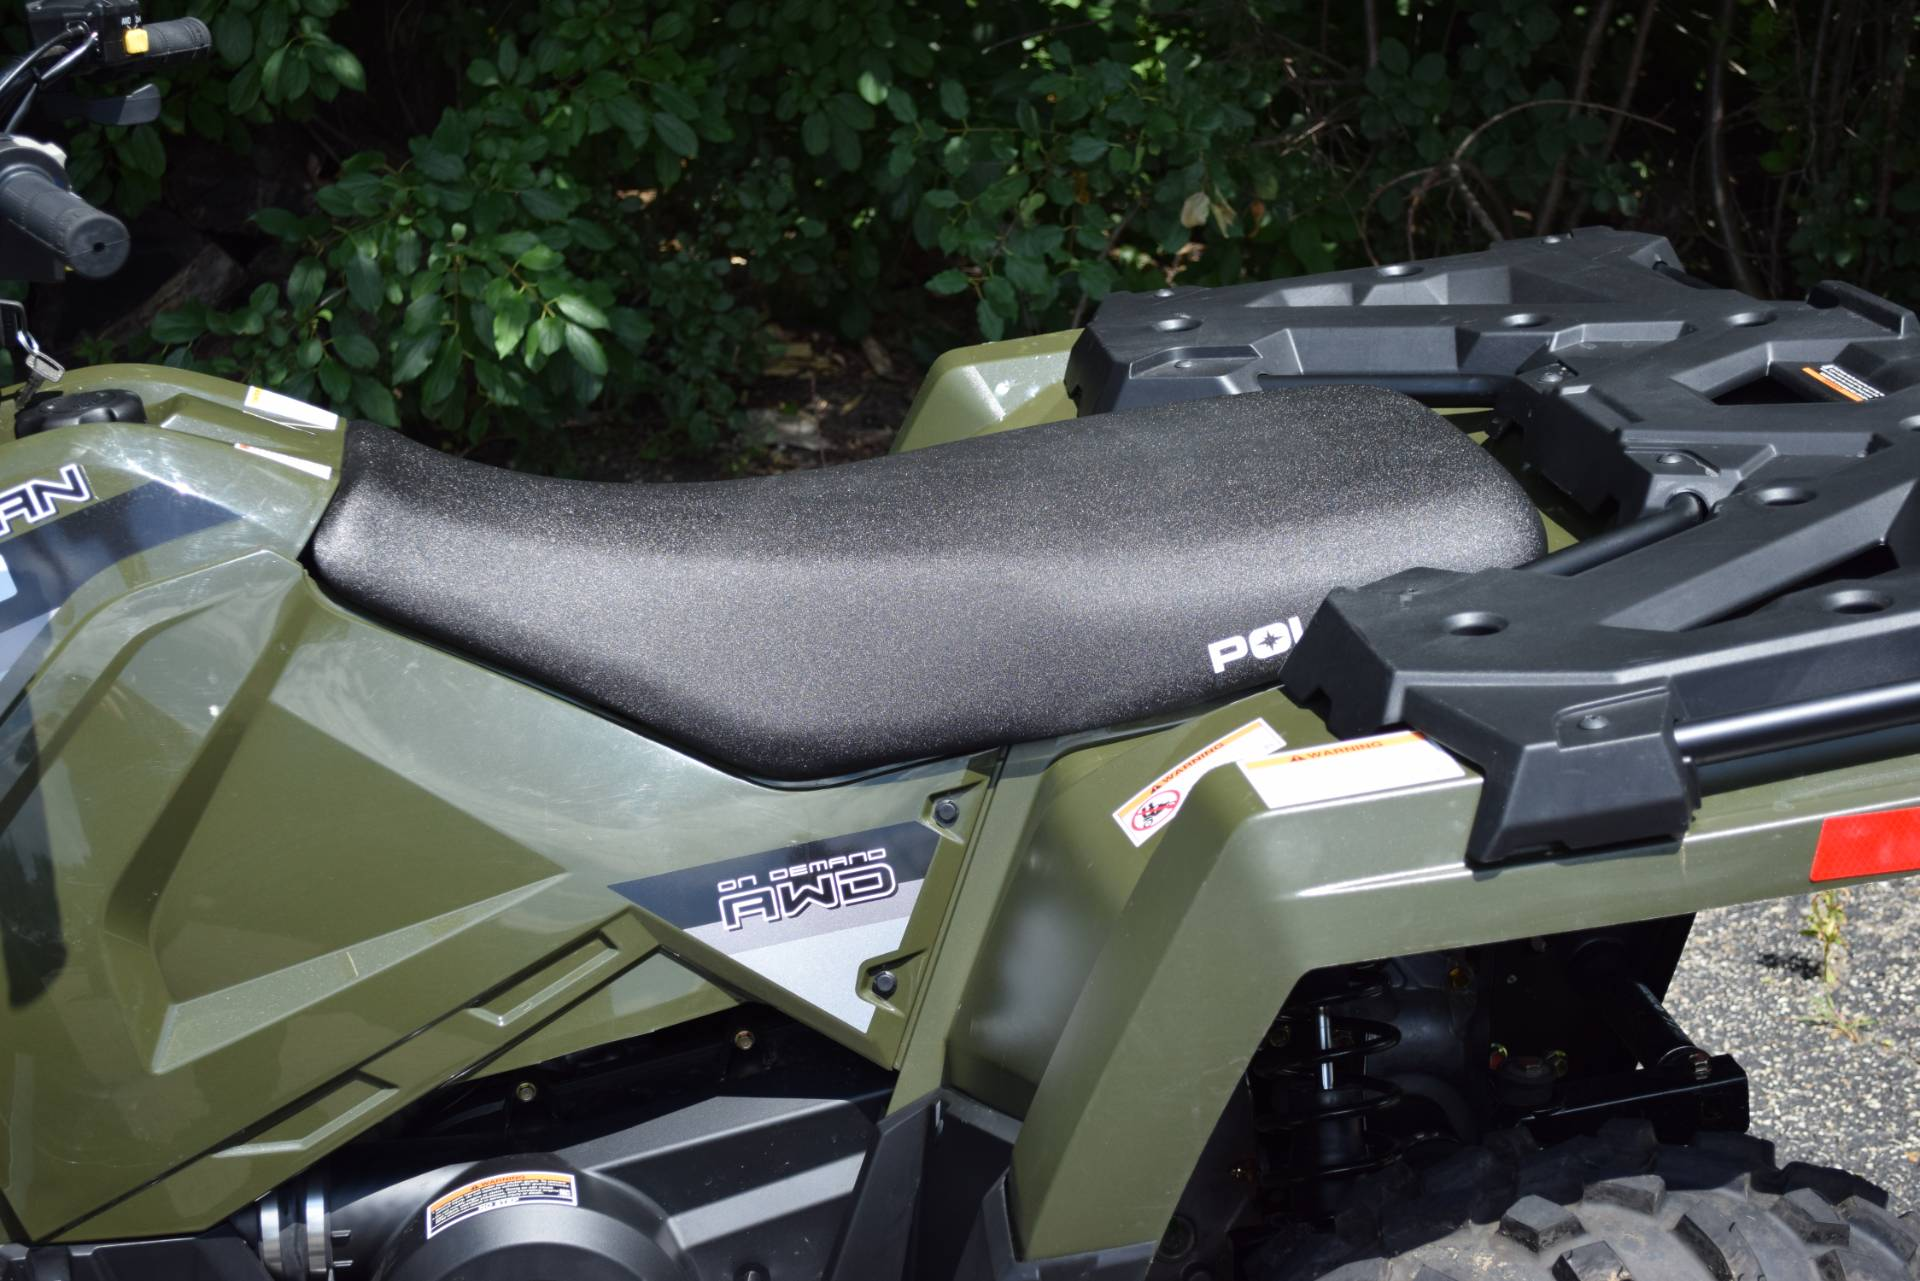 2016 Polaris Sportsman 570 in Wauconda, Illinois - Photo 20